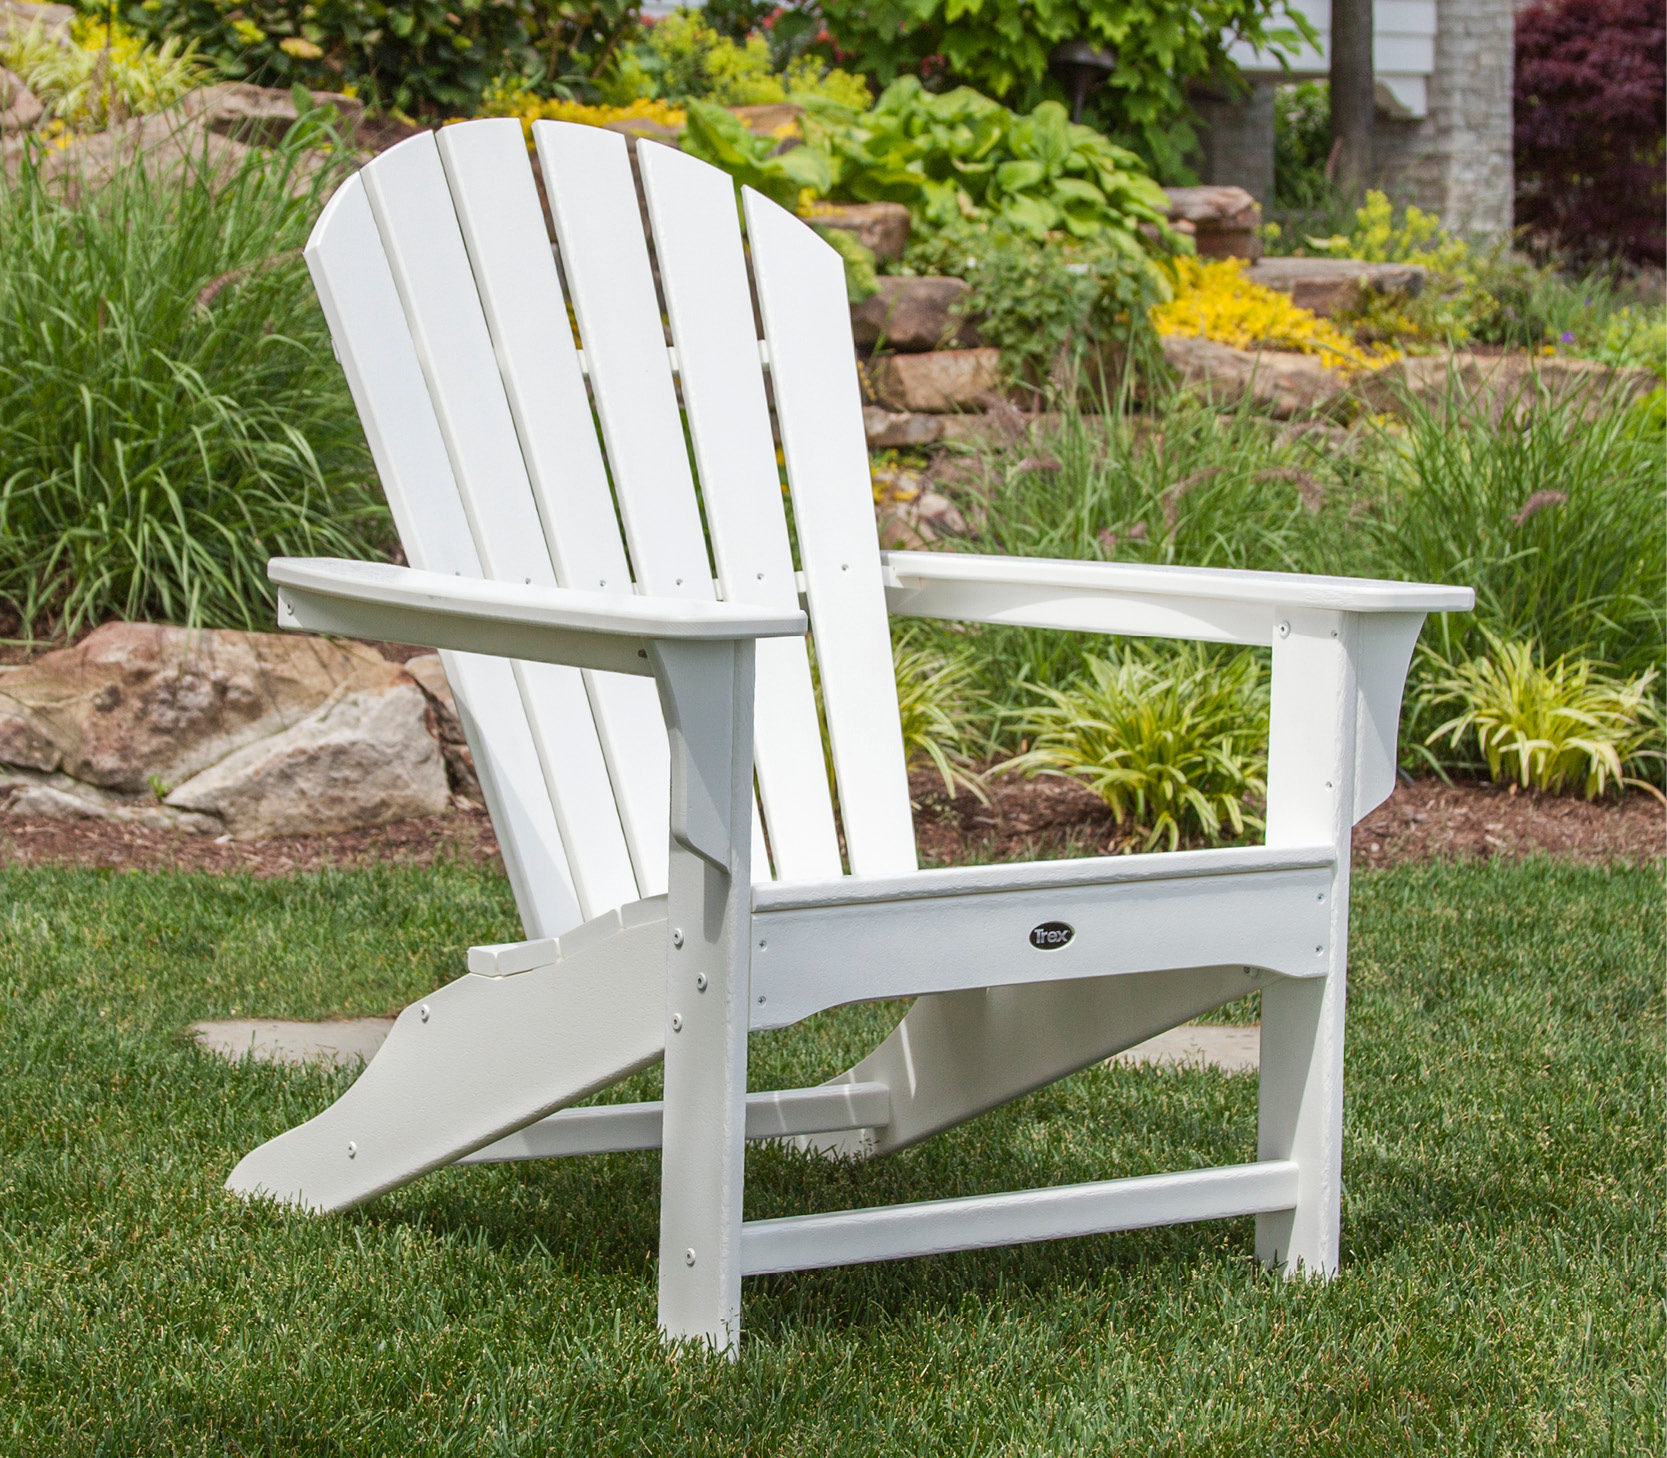 Weatherproof Adirondack Chairs How To Shop For An Adirondack Chair Trex Outdoor Furniture